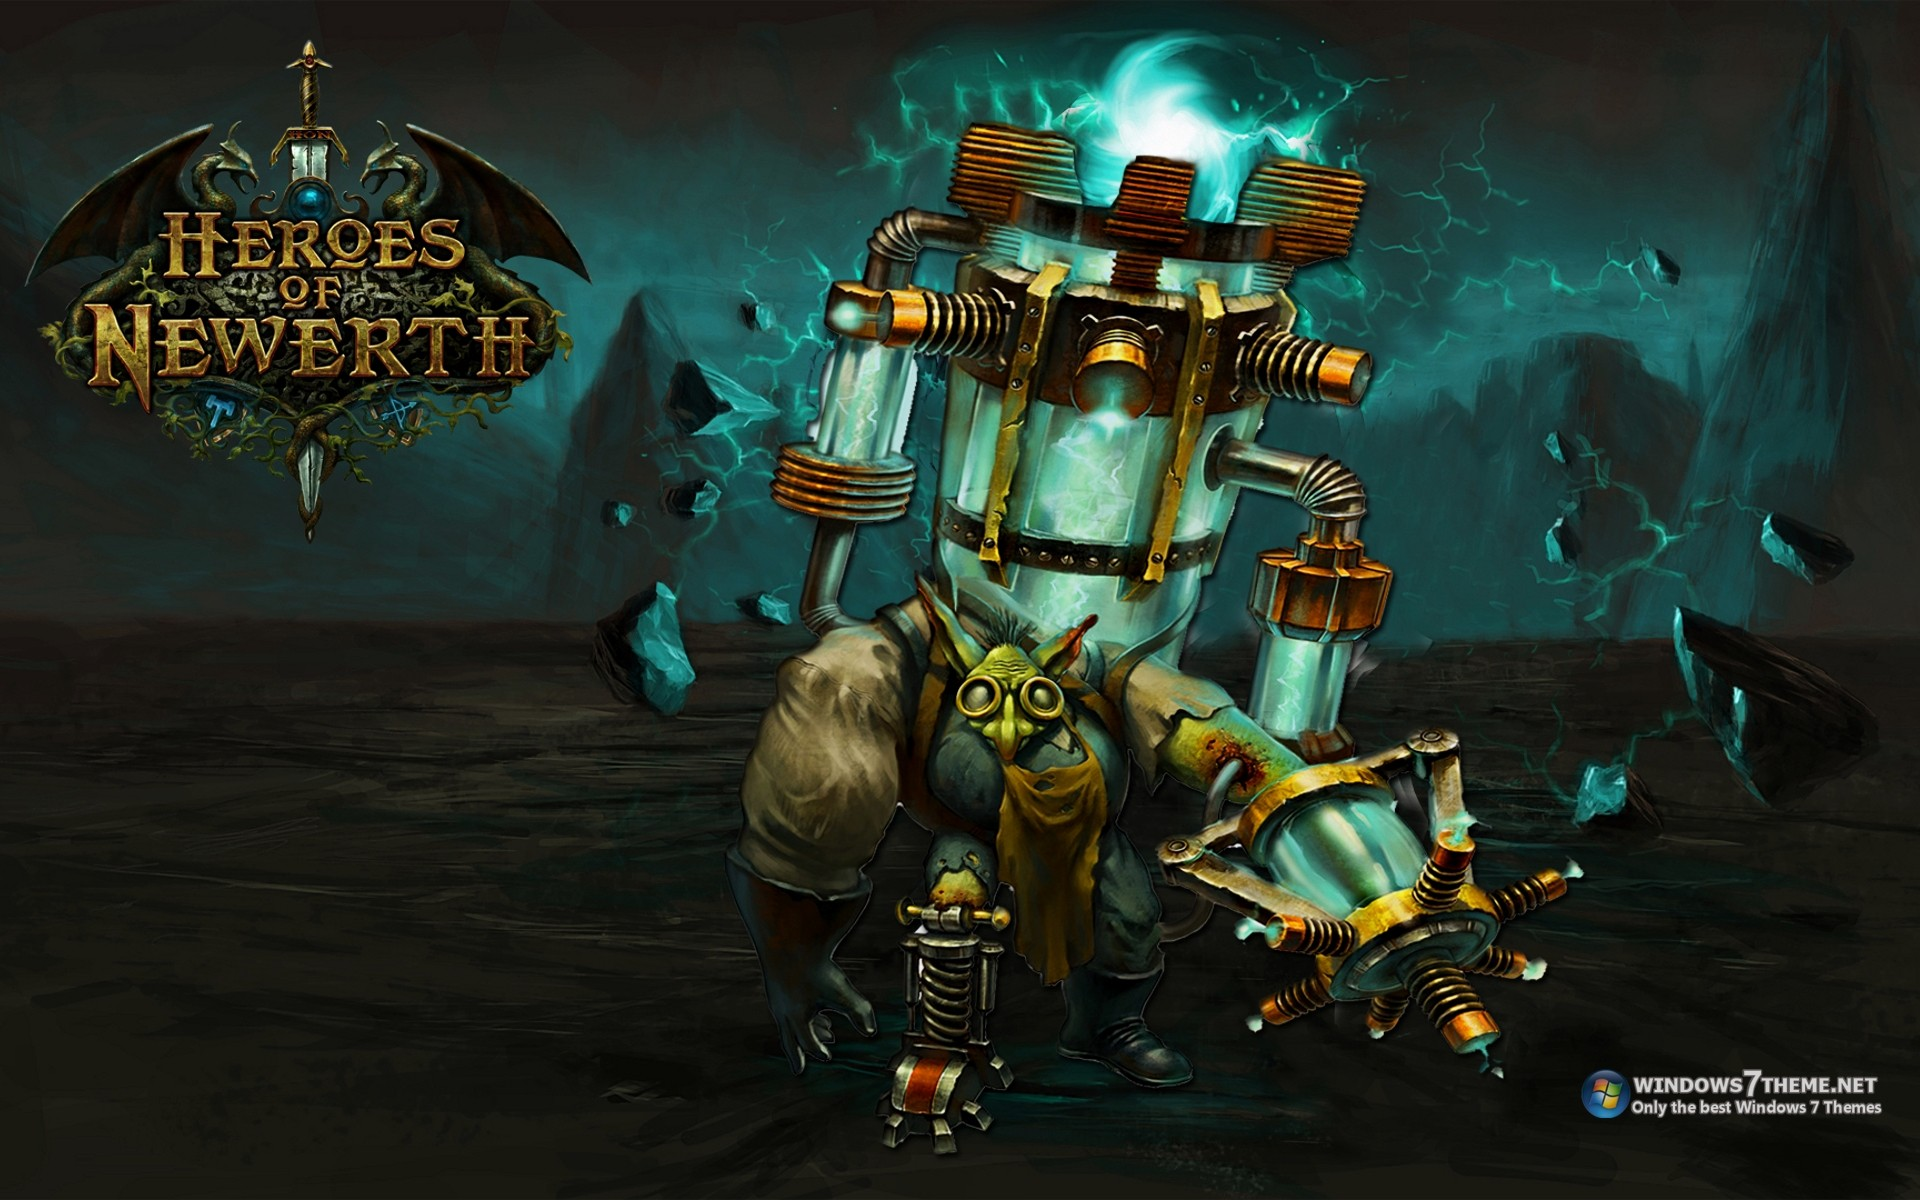 Alpha Coders | Wallpaper Abyss Video Game Heroes Of Newerth 338723